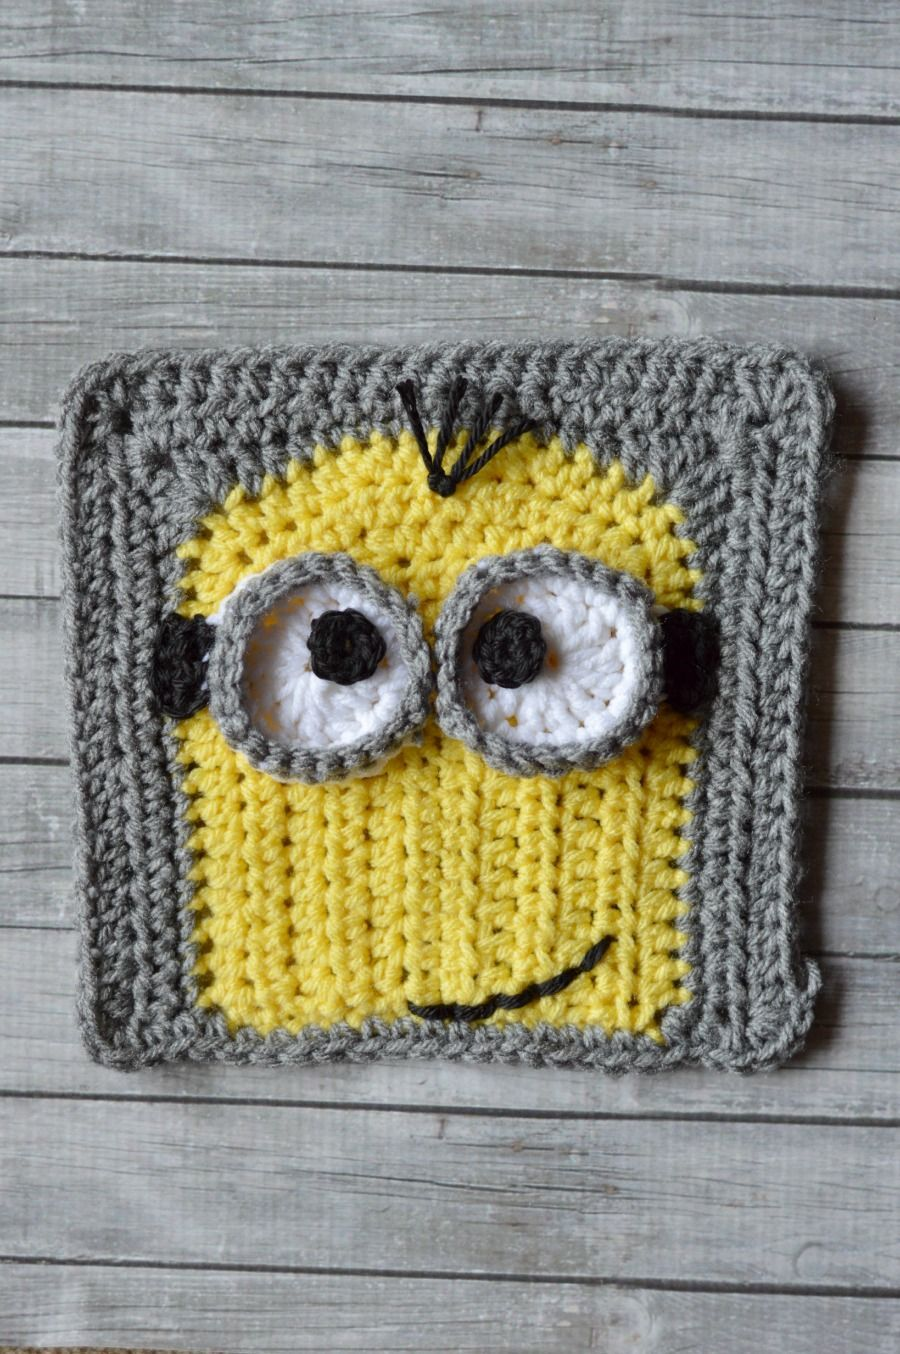 Free Crochet Pattern - Minion Crochet Afghan Square | Make a Minion afghan for your little minion. #minioncrochetpatterns Free Crochet Pattern - Minion Crochet Afghan Square | Make a Minion afghan for your little minion. #minioncrochetpatterns